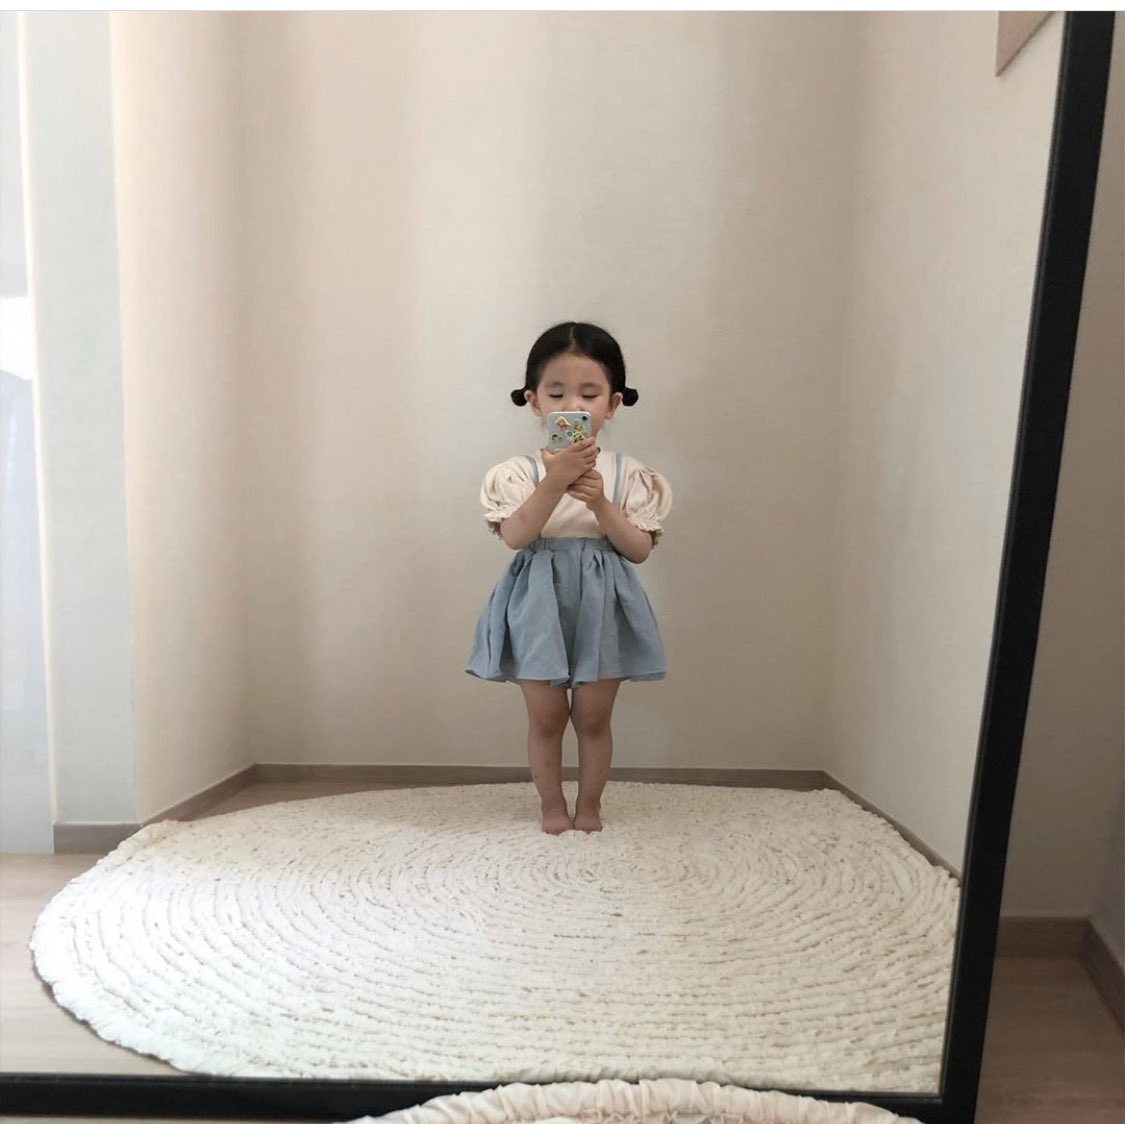 completely obsessed with this baby's mirror pics https://t.co/oiF45uwrqB